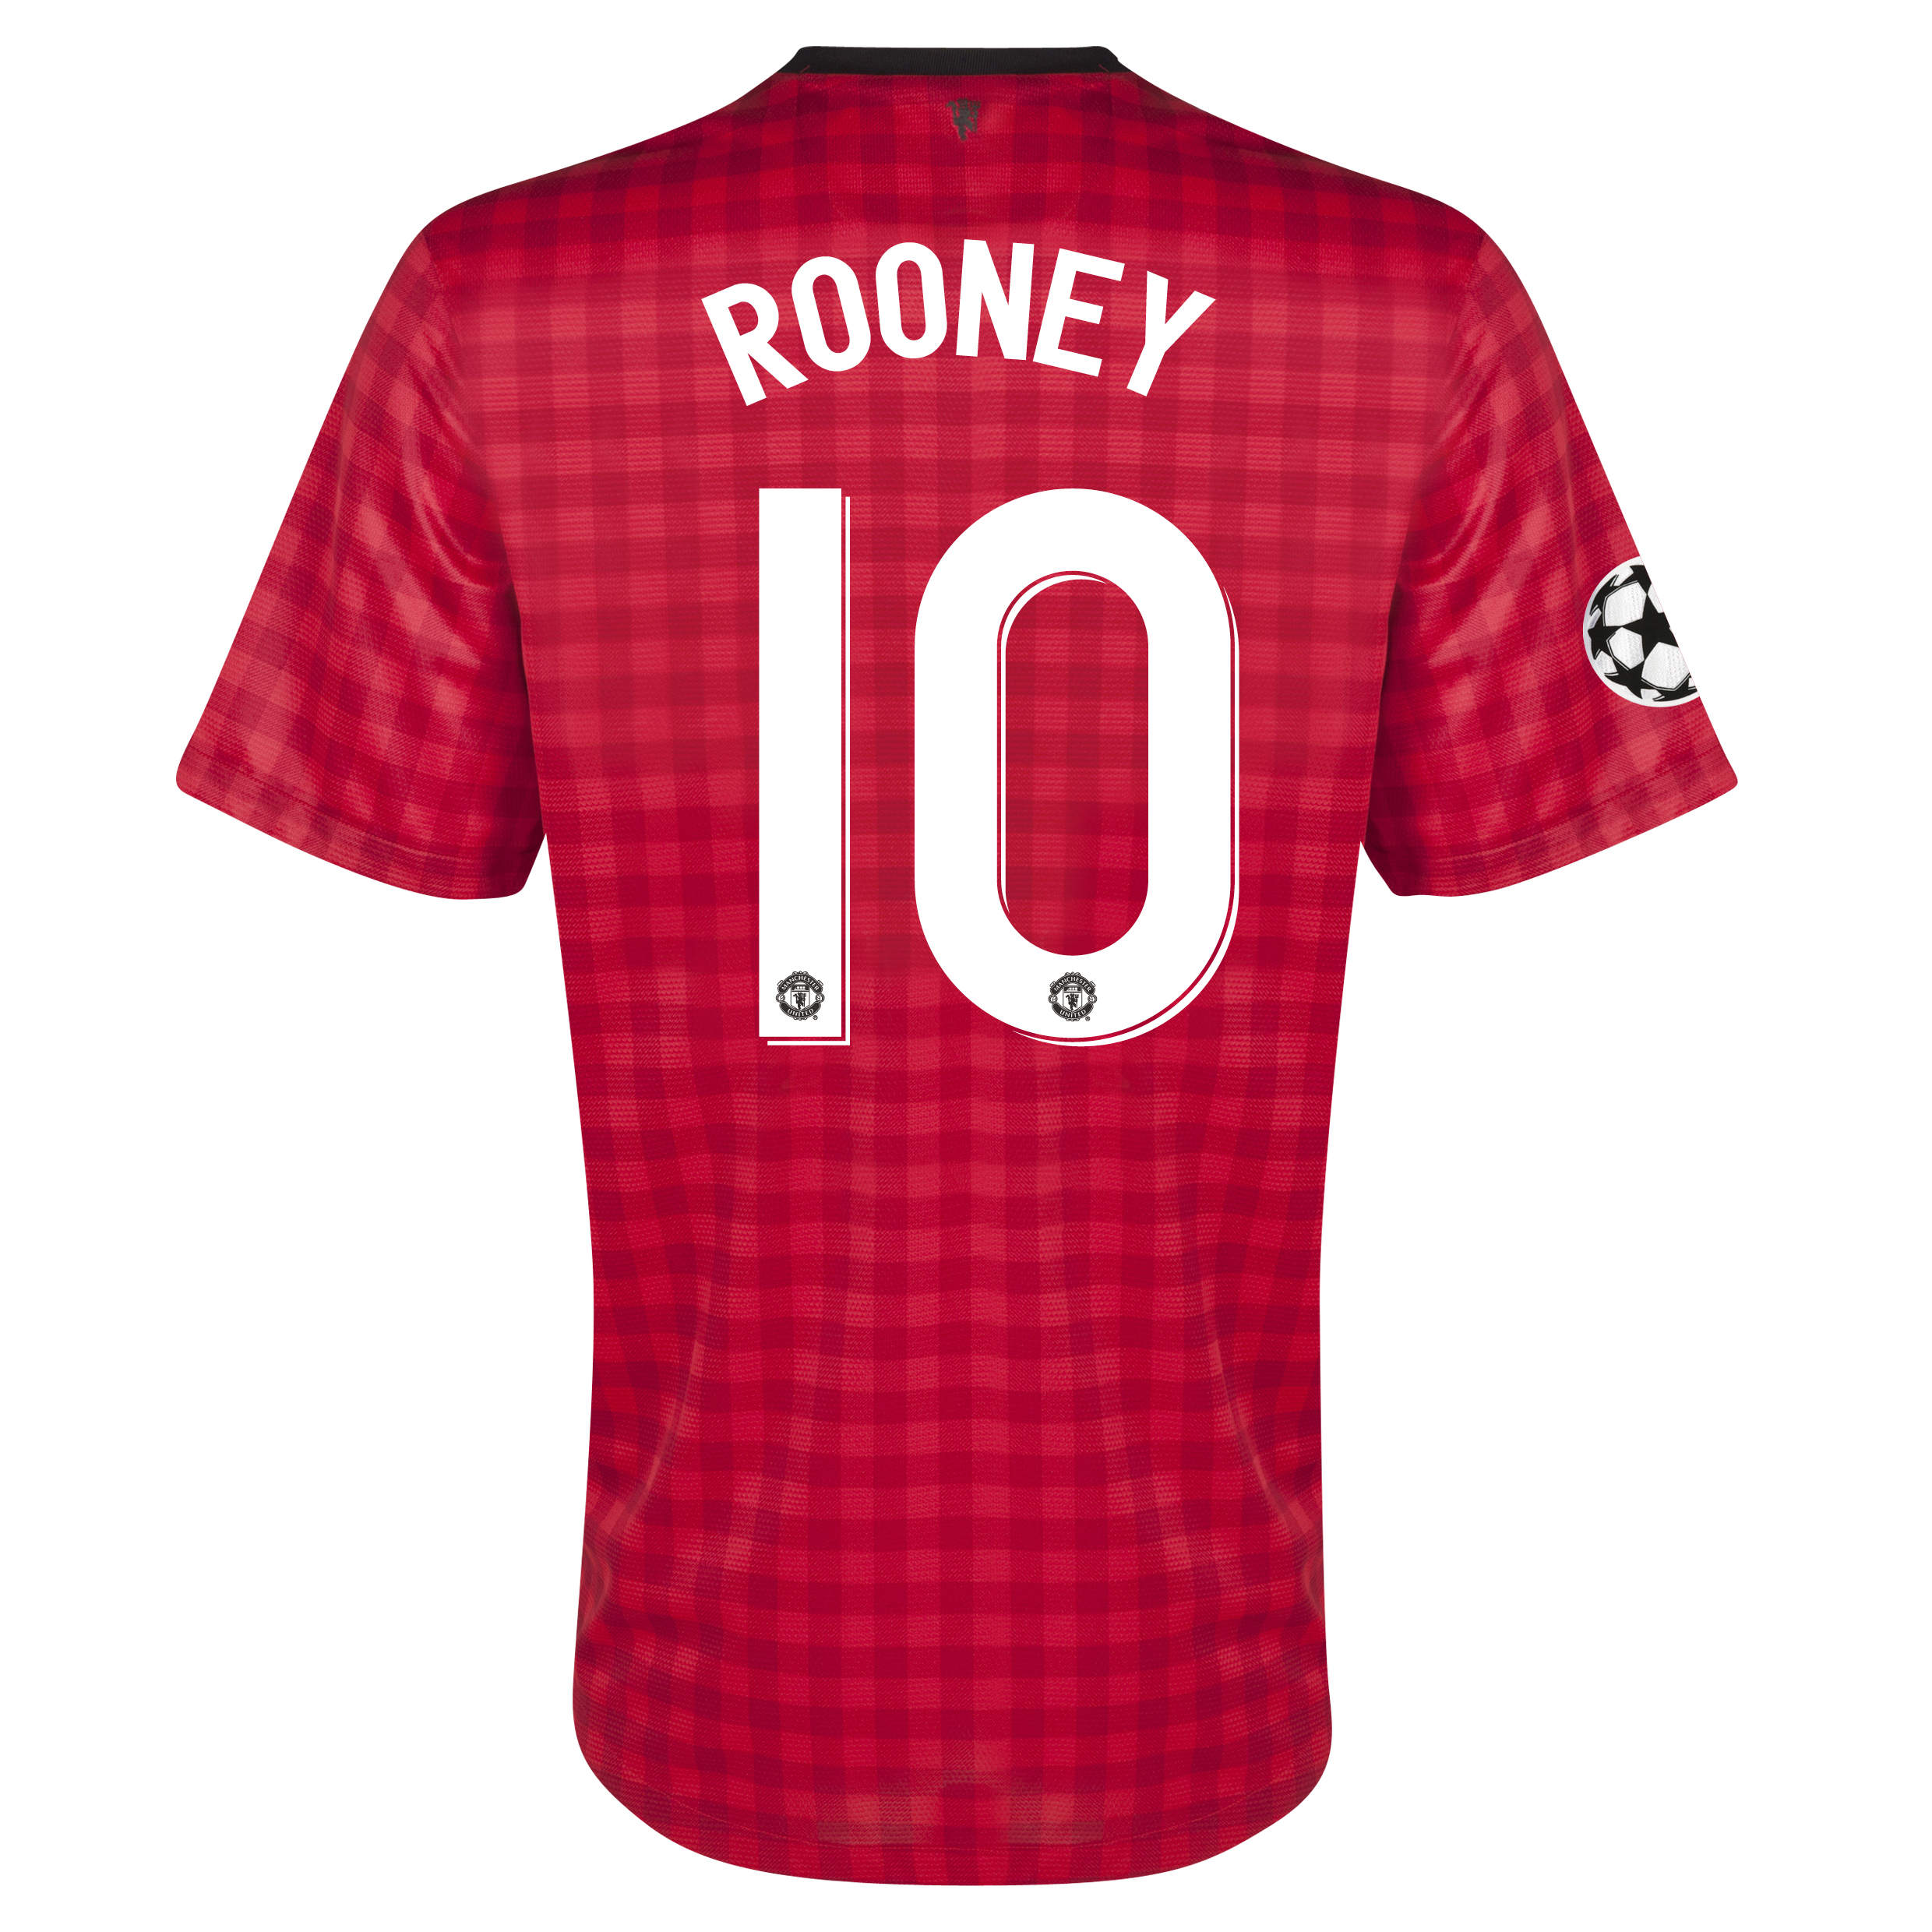 Manchester United UEFA Champions League Home Shirt 2012/13 with Rooney 10 printing